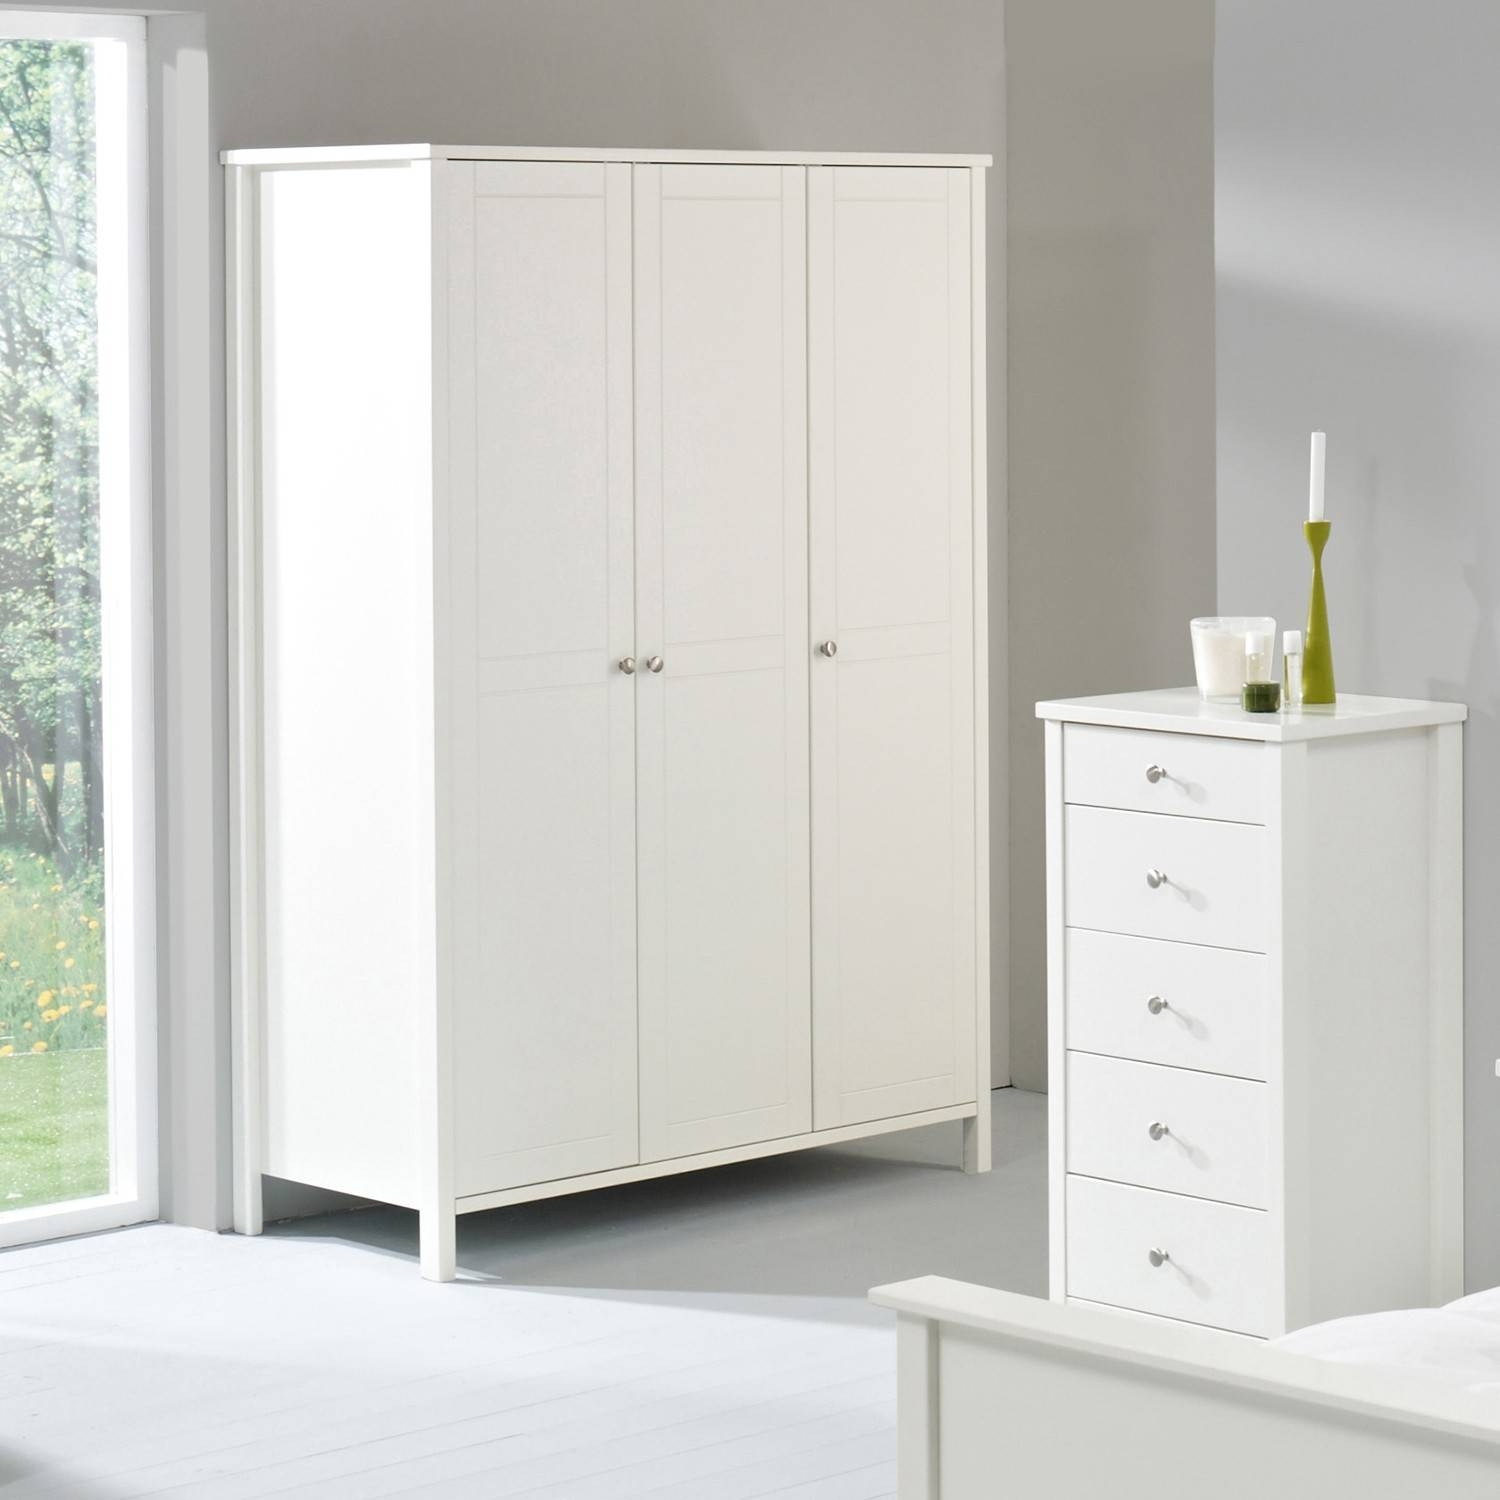 Door: Three Door White Wardrobe with regard to 3 Door White Wardrobes (Image 7 of 30)